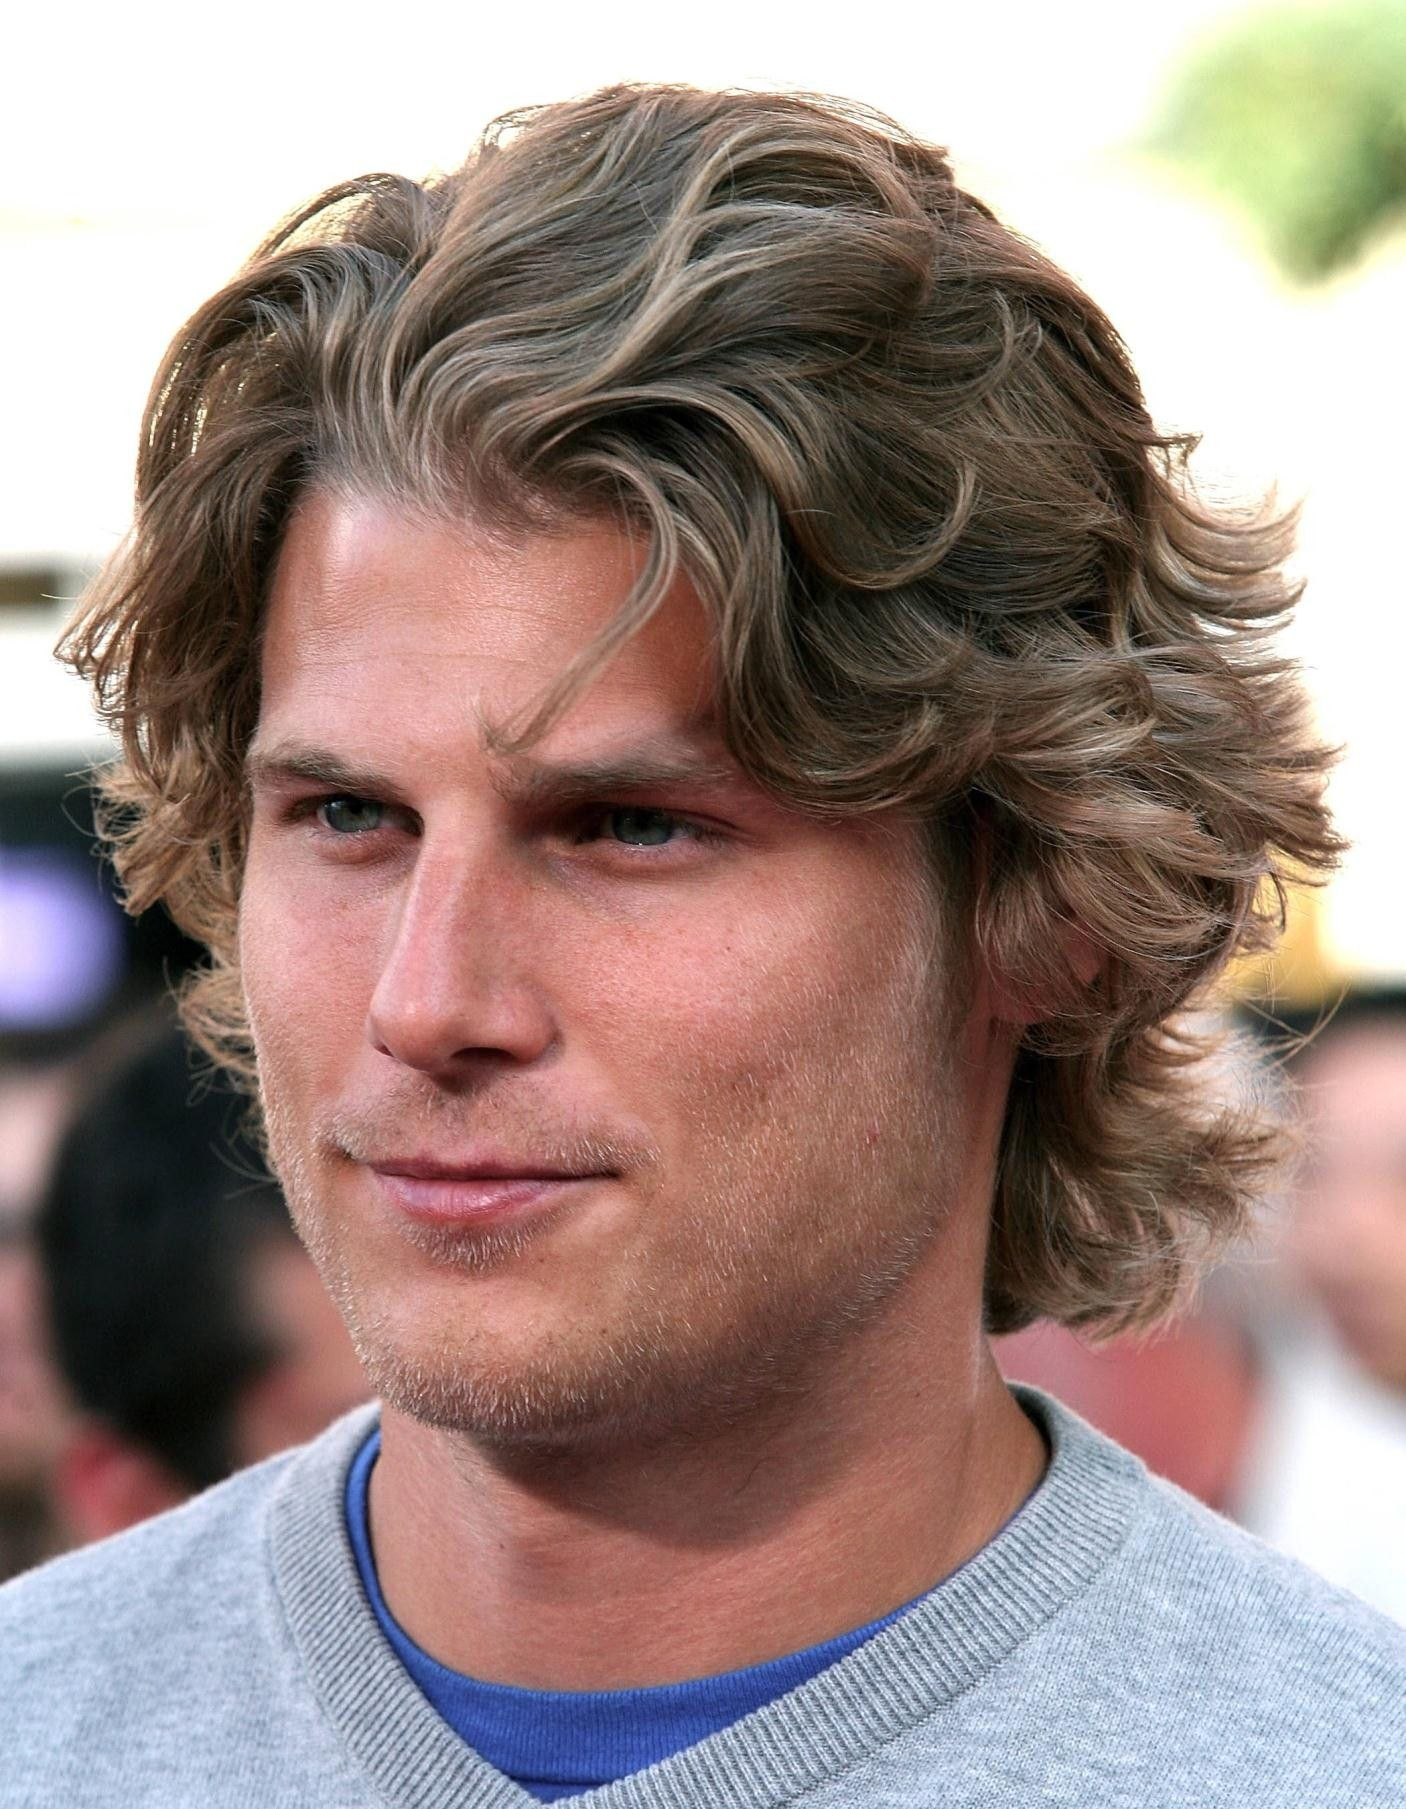 Long Layered Hairstyles For Men Haircuts Gallery Images Wavy Hair Men Men S Long Hairstyles Boy Hairstyles